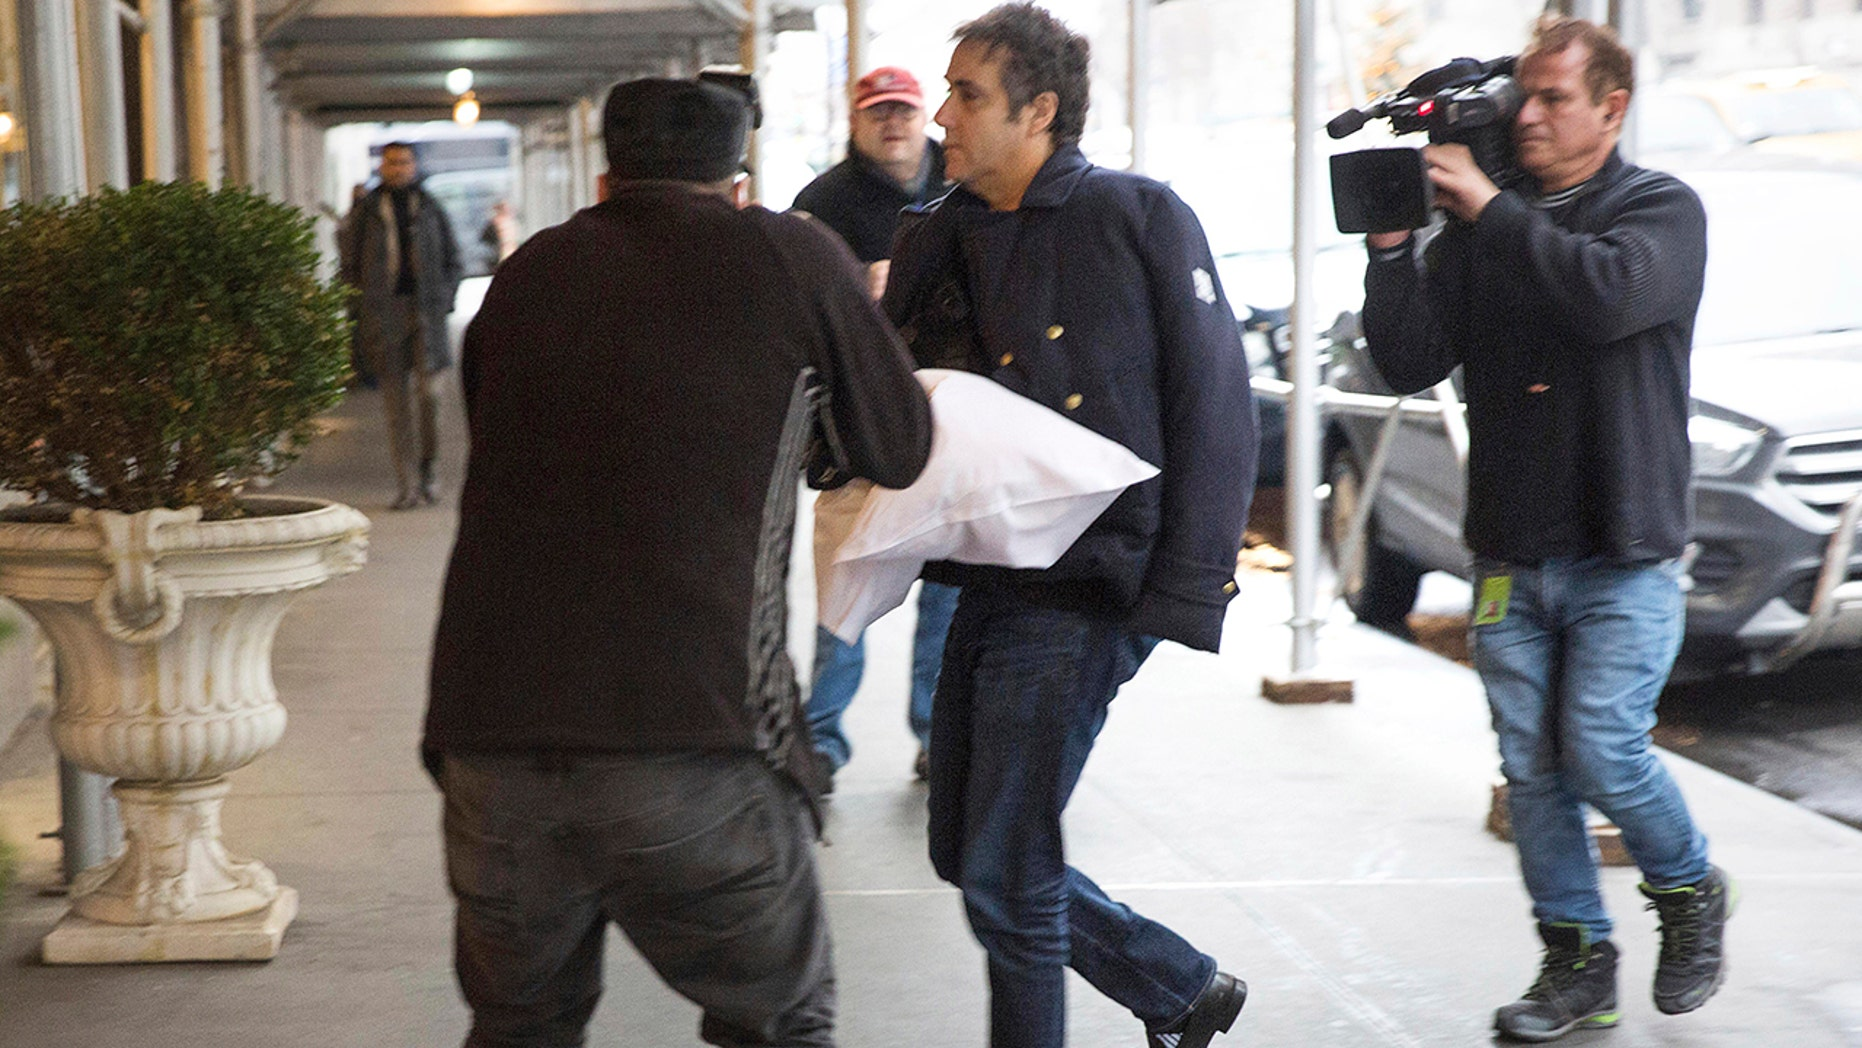 Michael Cohen arrives at his home in New York City with one of his arms in a sling supported by a pillow Friday, Jan. 18, 2019. (Associated Press)